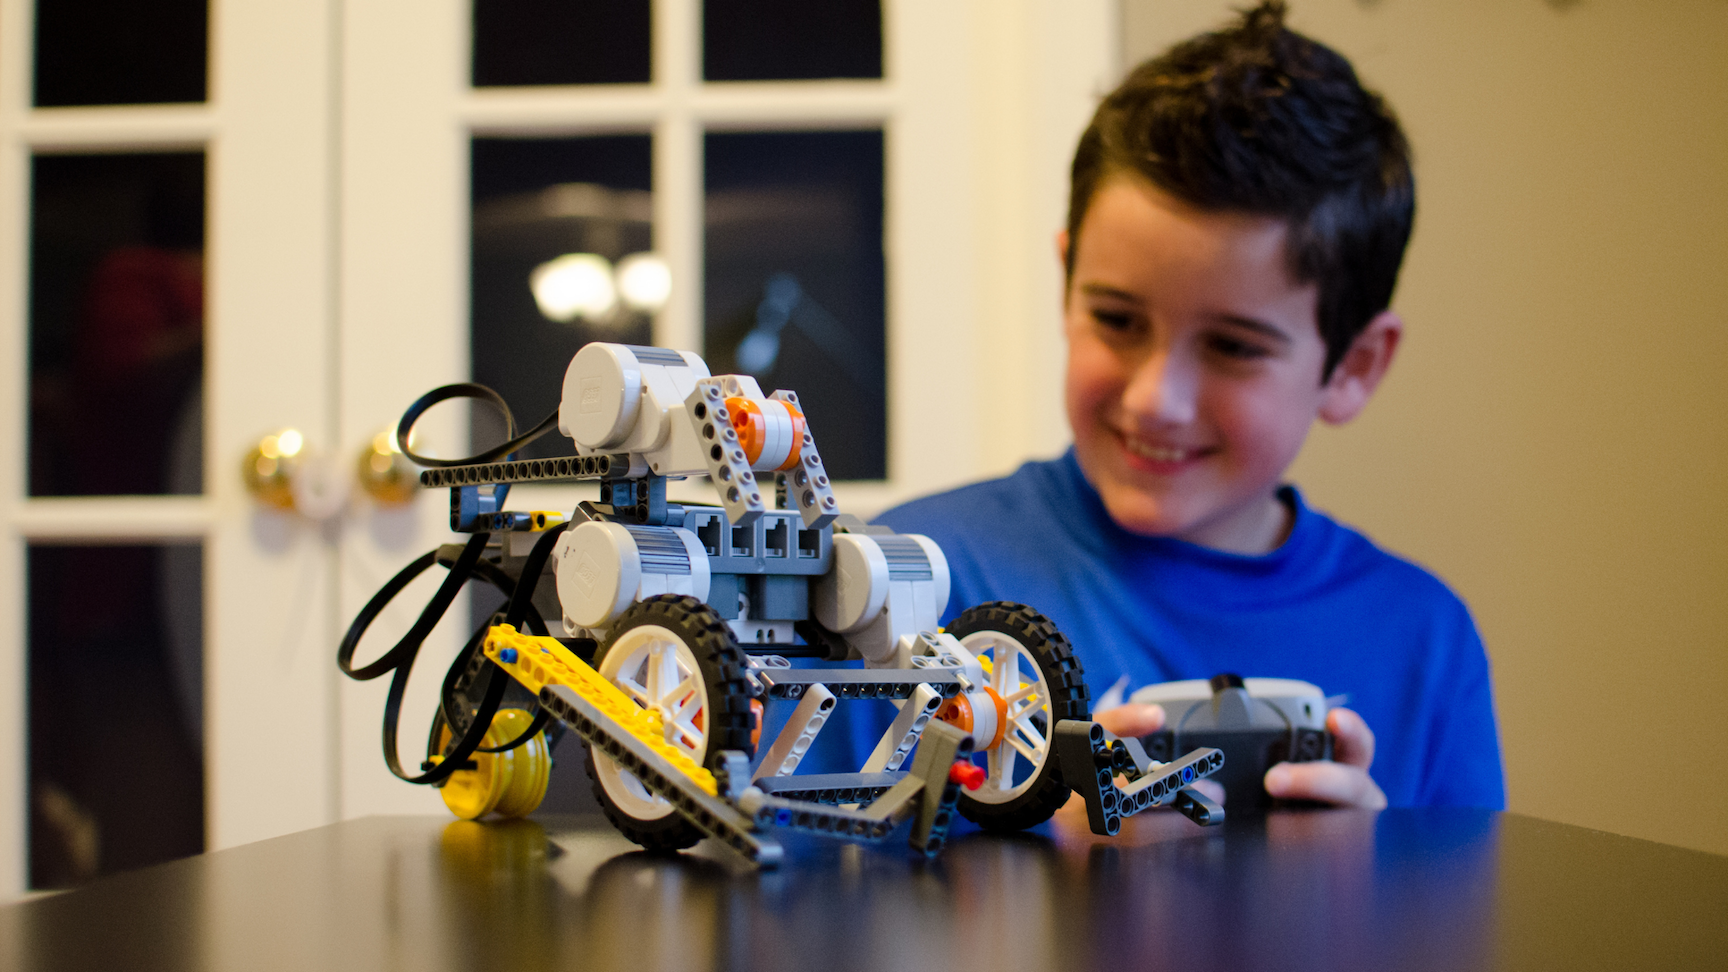 Has your child dreamed of becoming an astronaut and leading a mission to Mars? At Snapology, we teach robotics and coding concepts just like that of the Mars rover to children ages 4-14. You will be amazed by what your child can do!